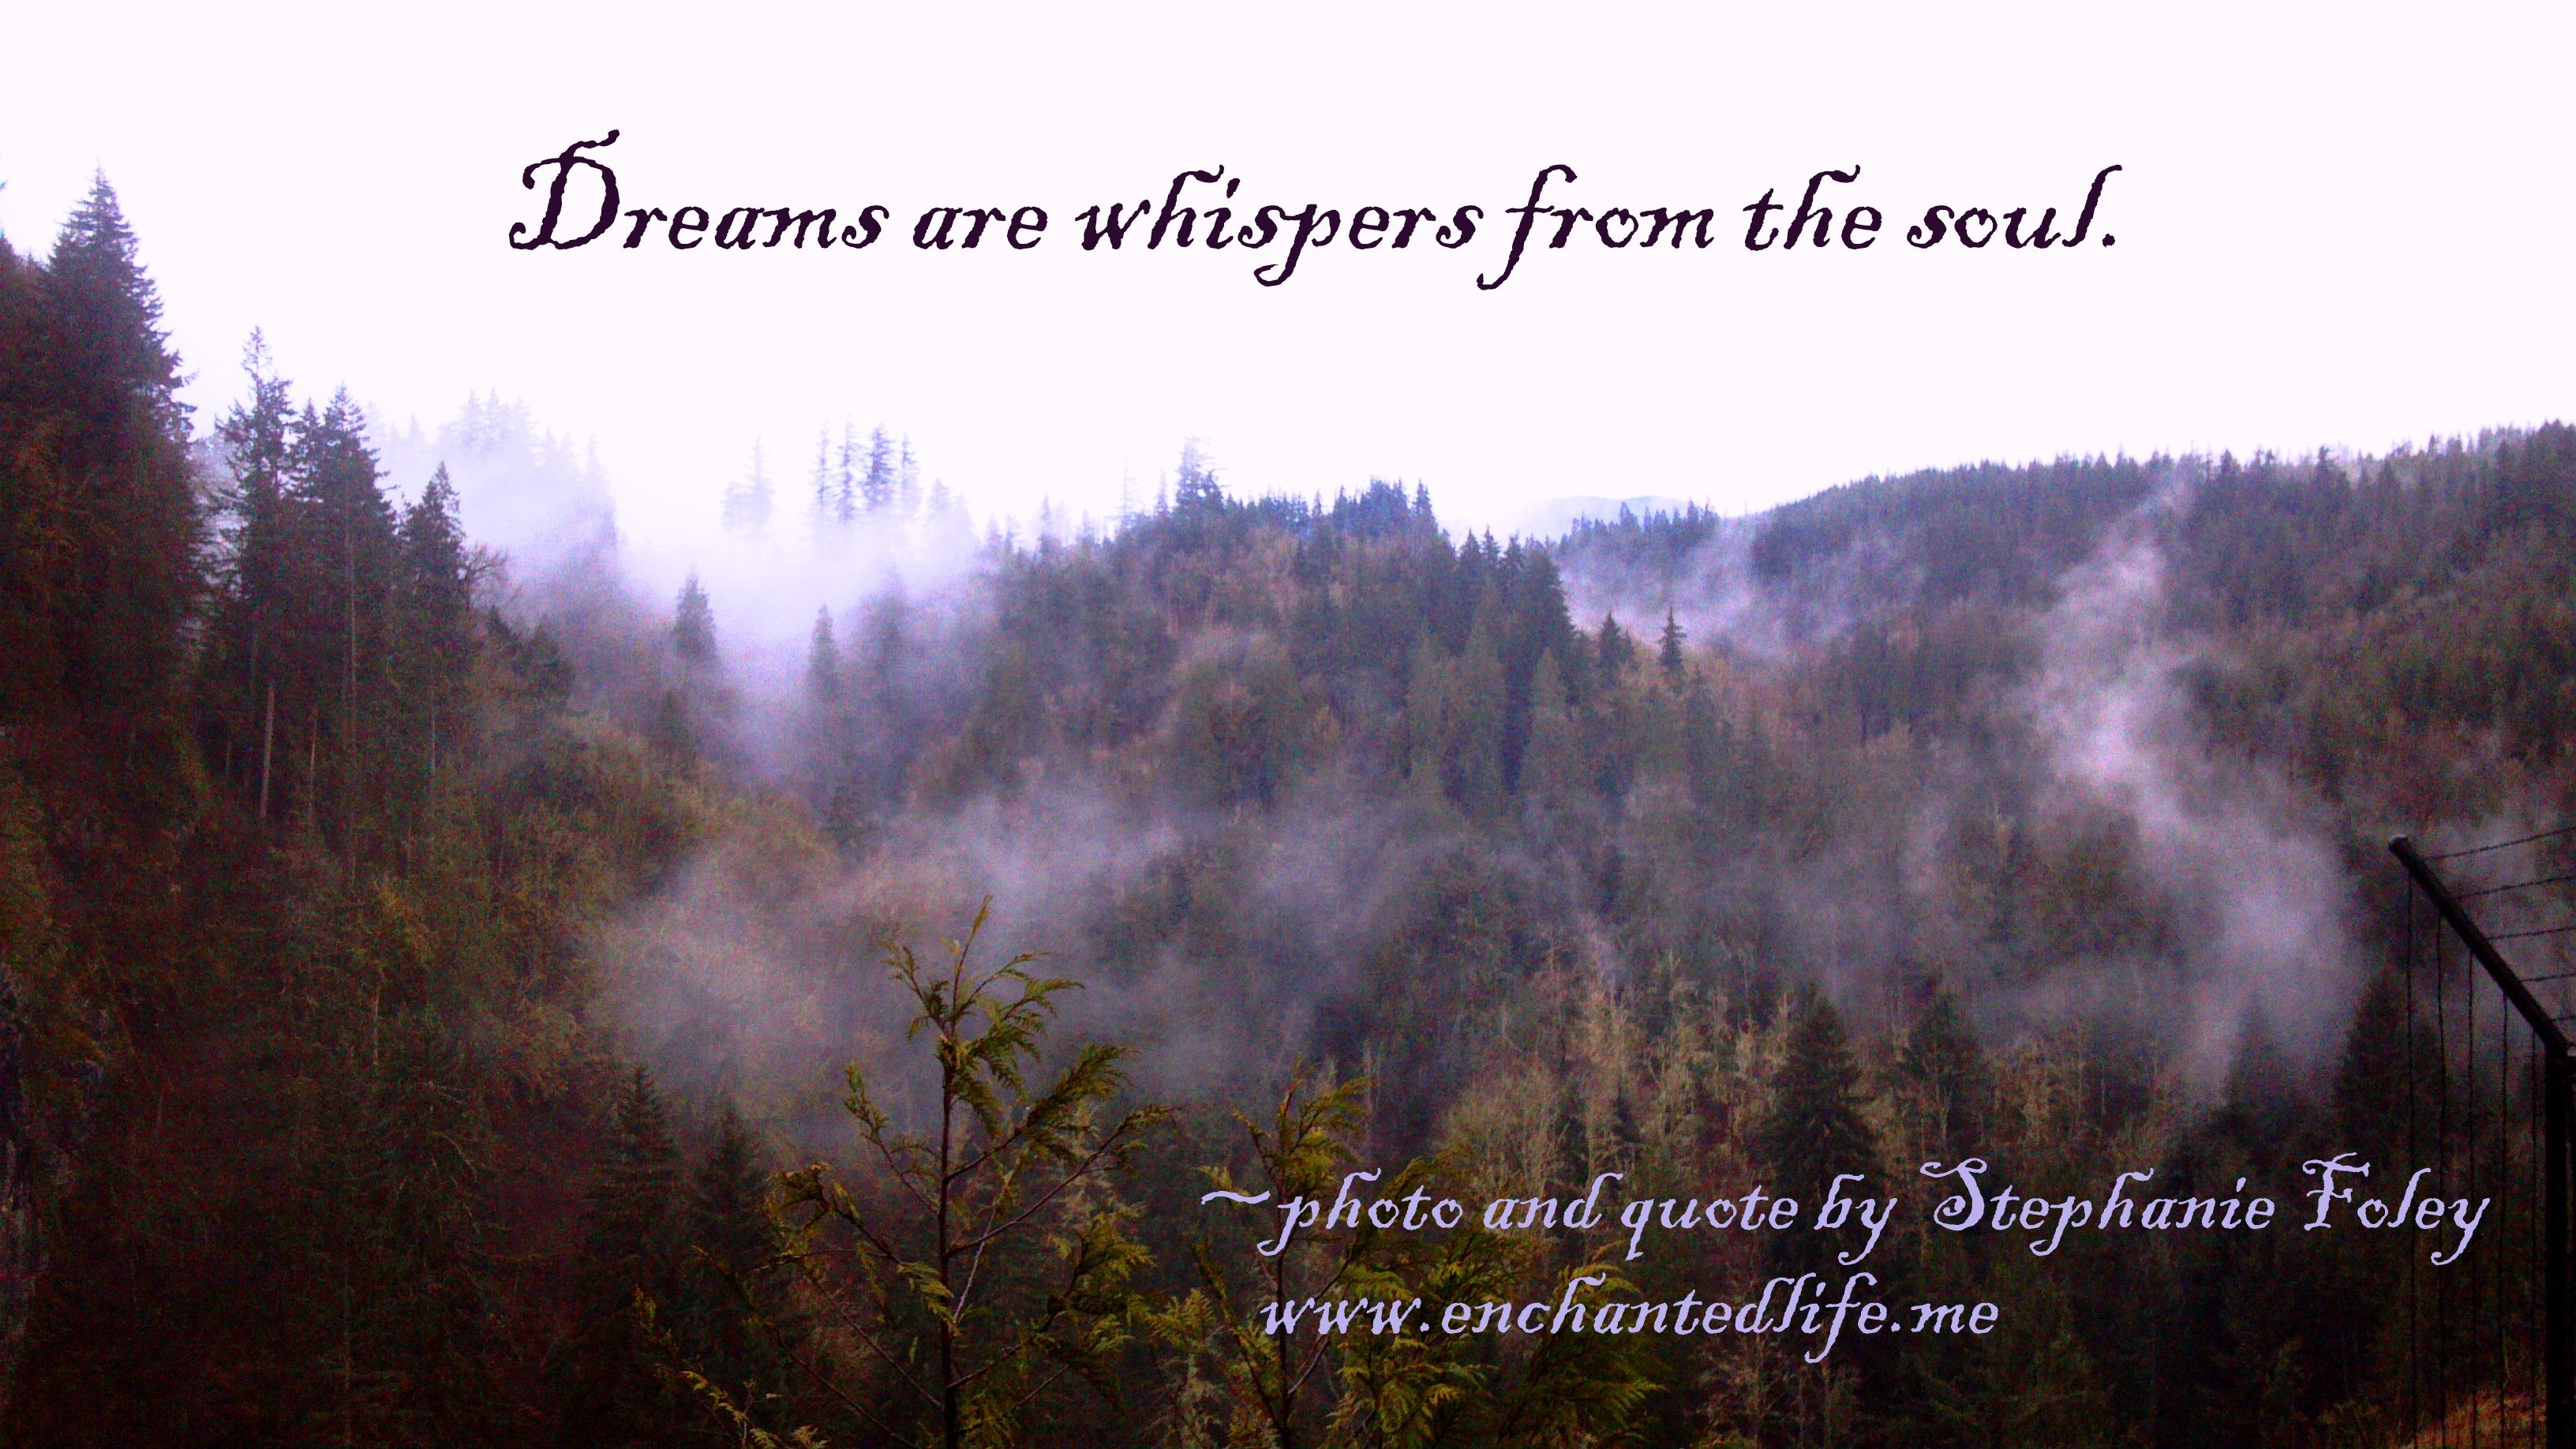 Whispers from the soul.